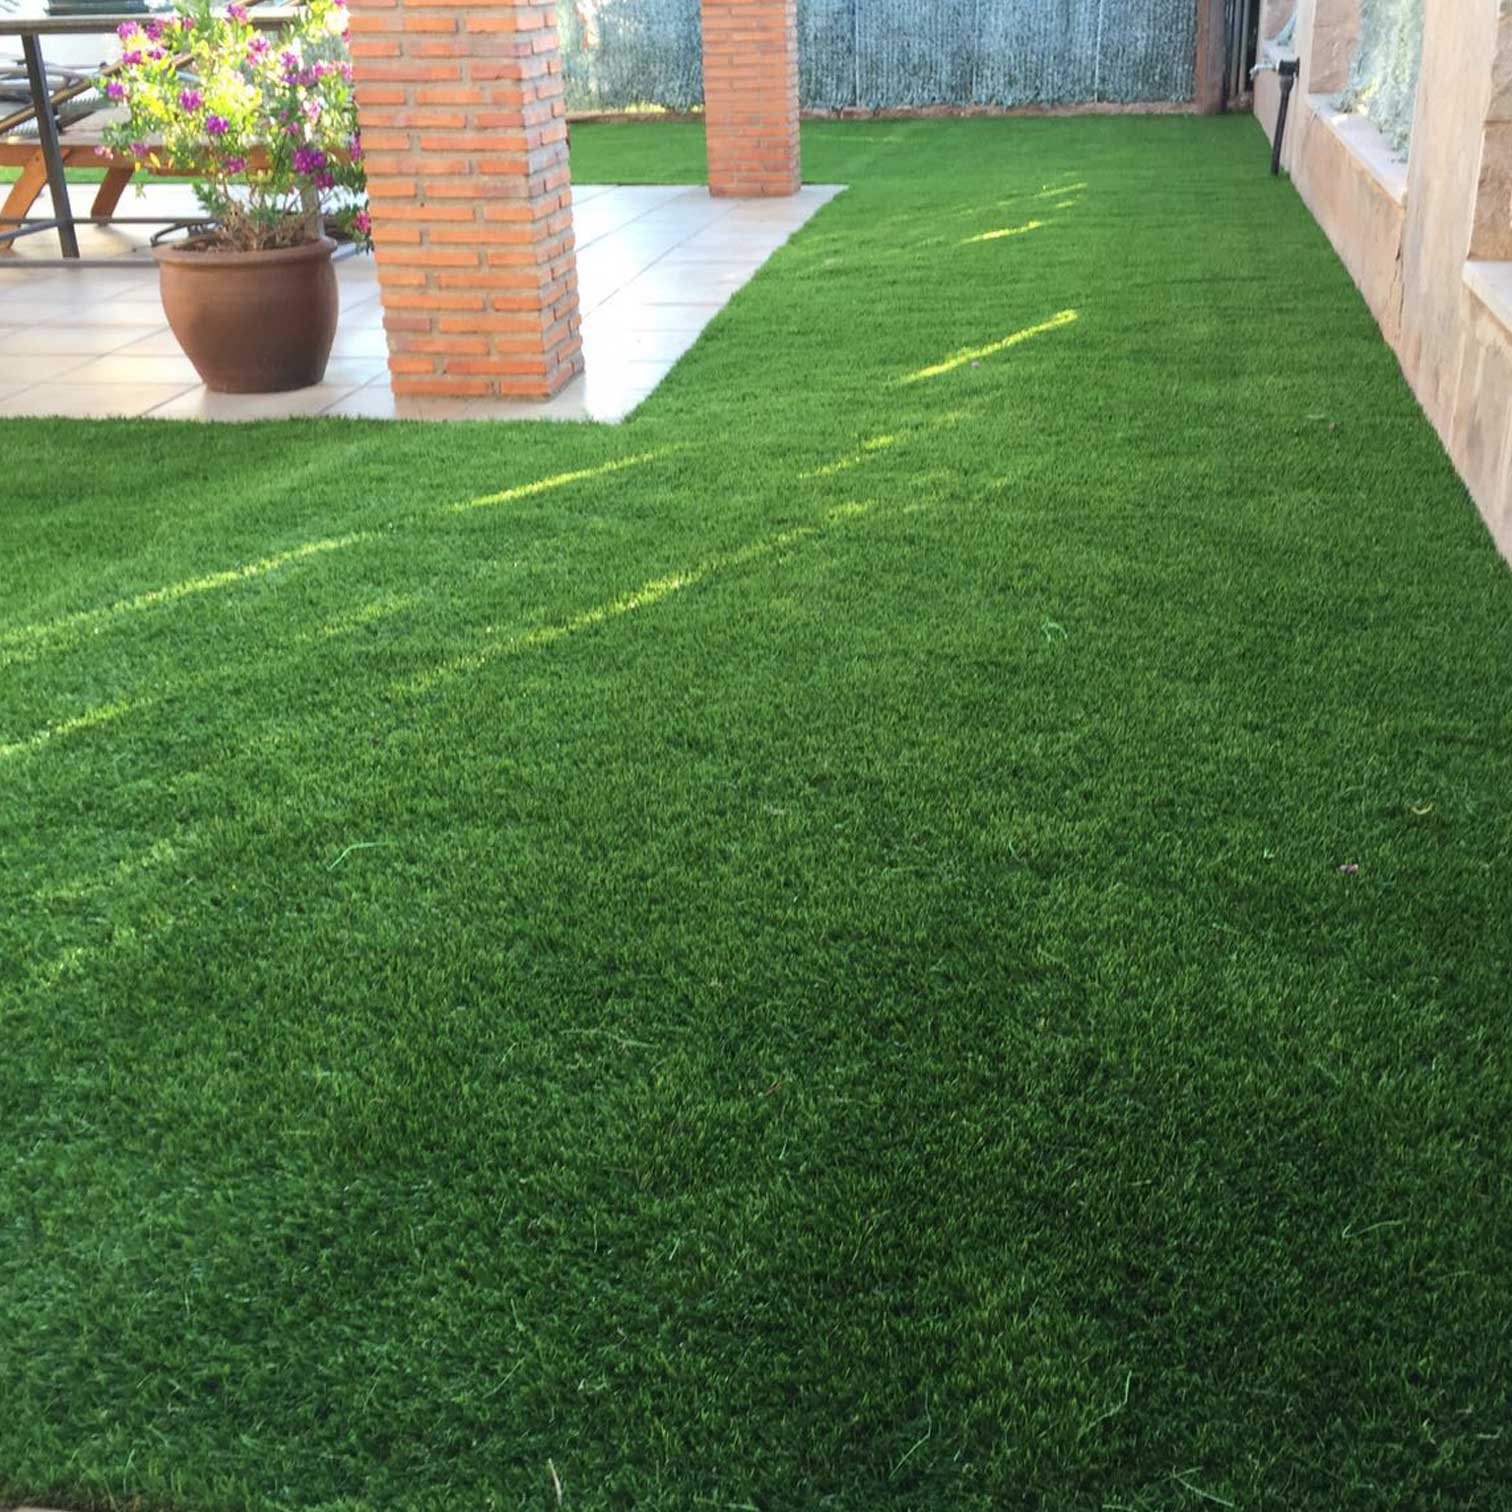 Jardines cesped artificial cesped artificial jardin - Jardin cesped artificial ...